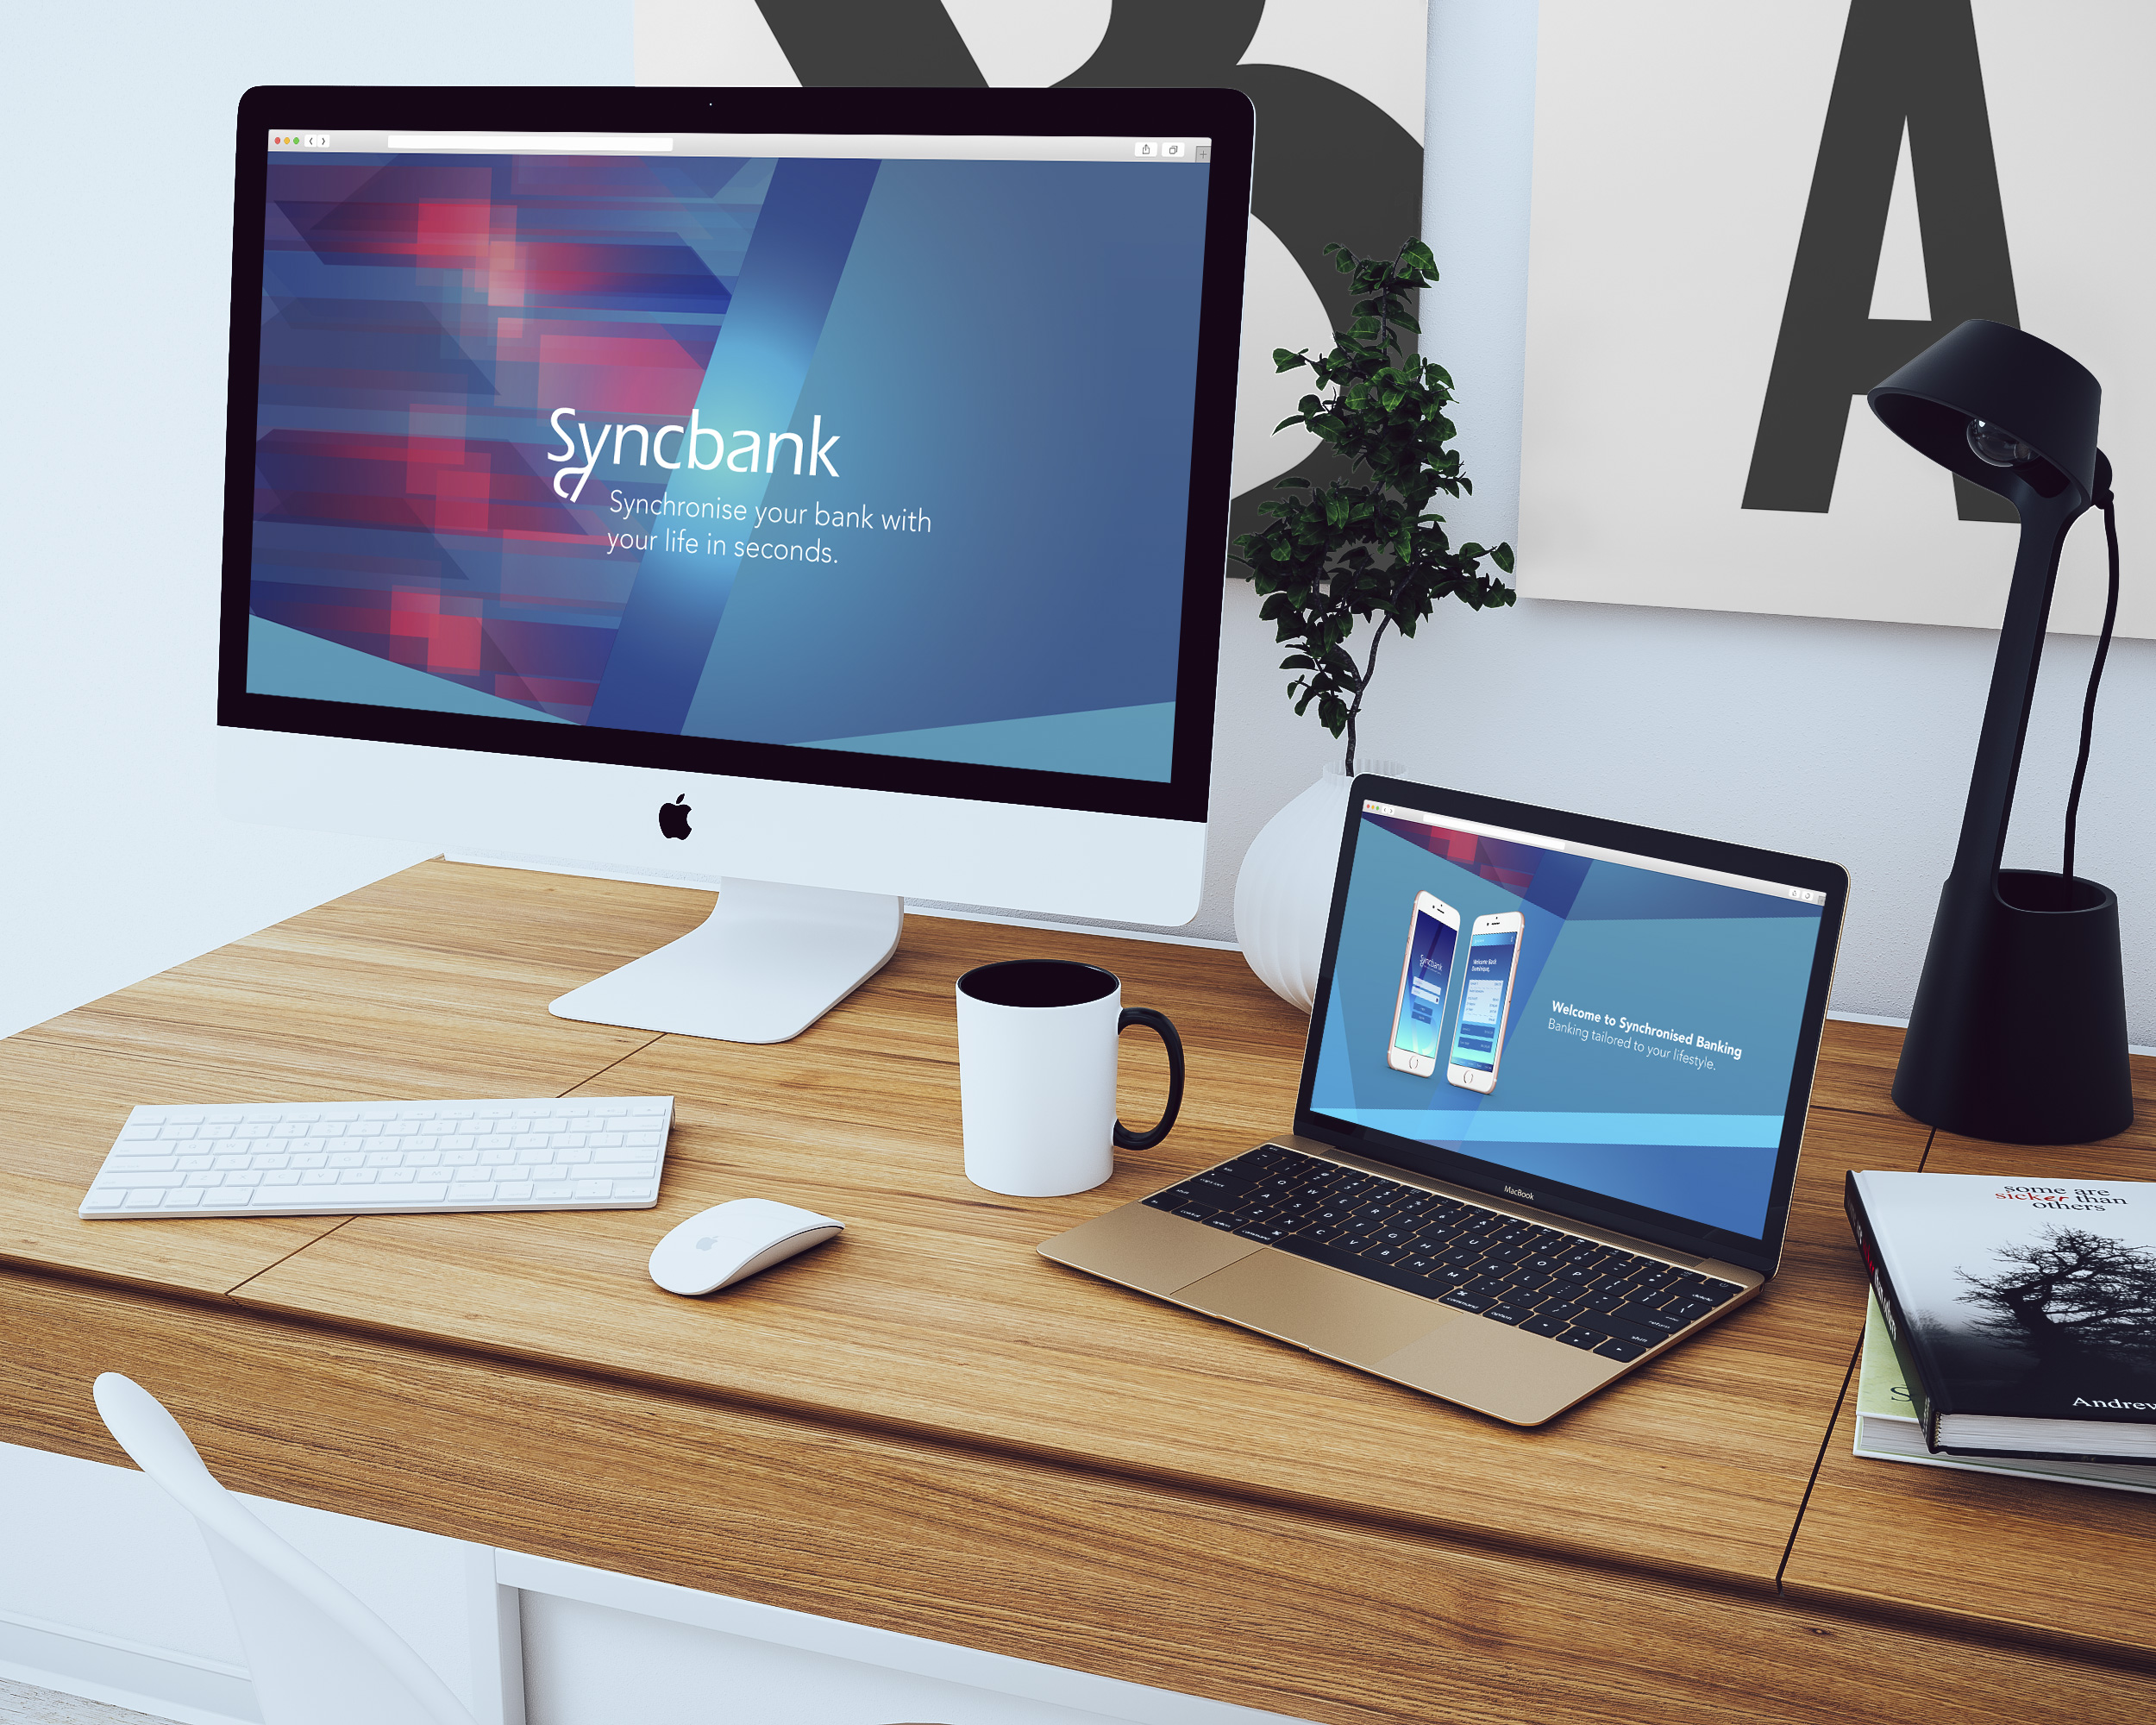 new-workspace-mockup.jpg